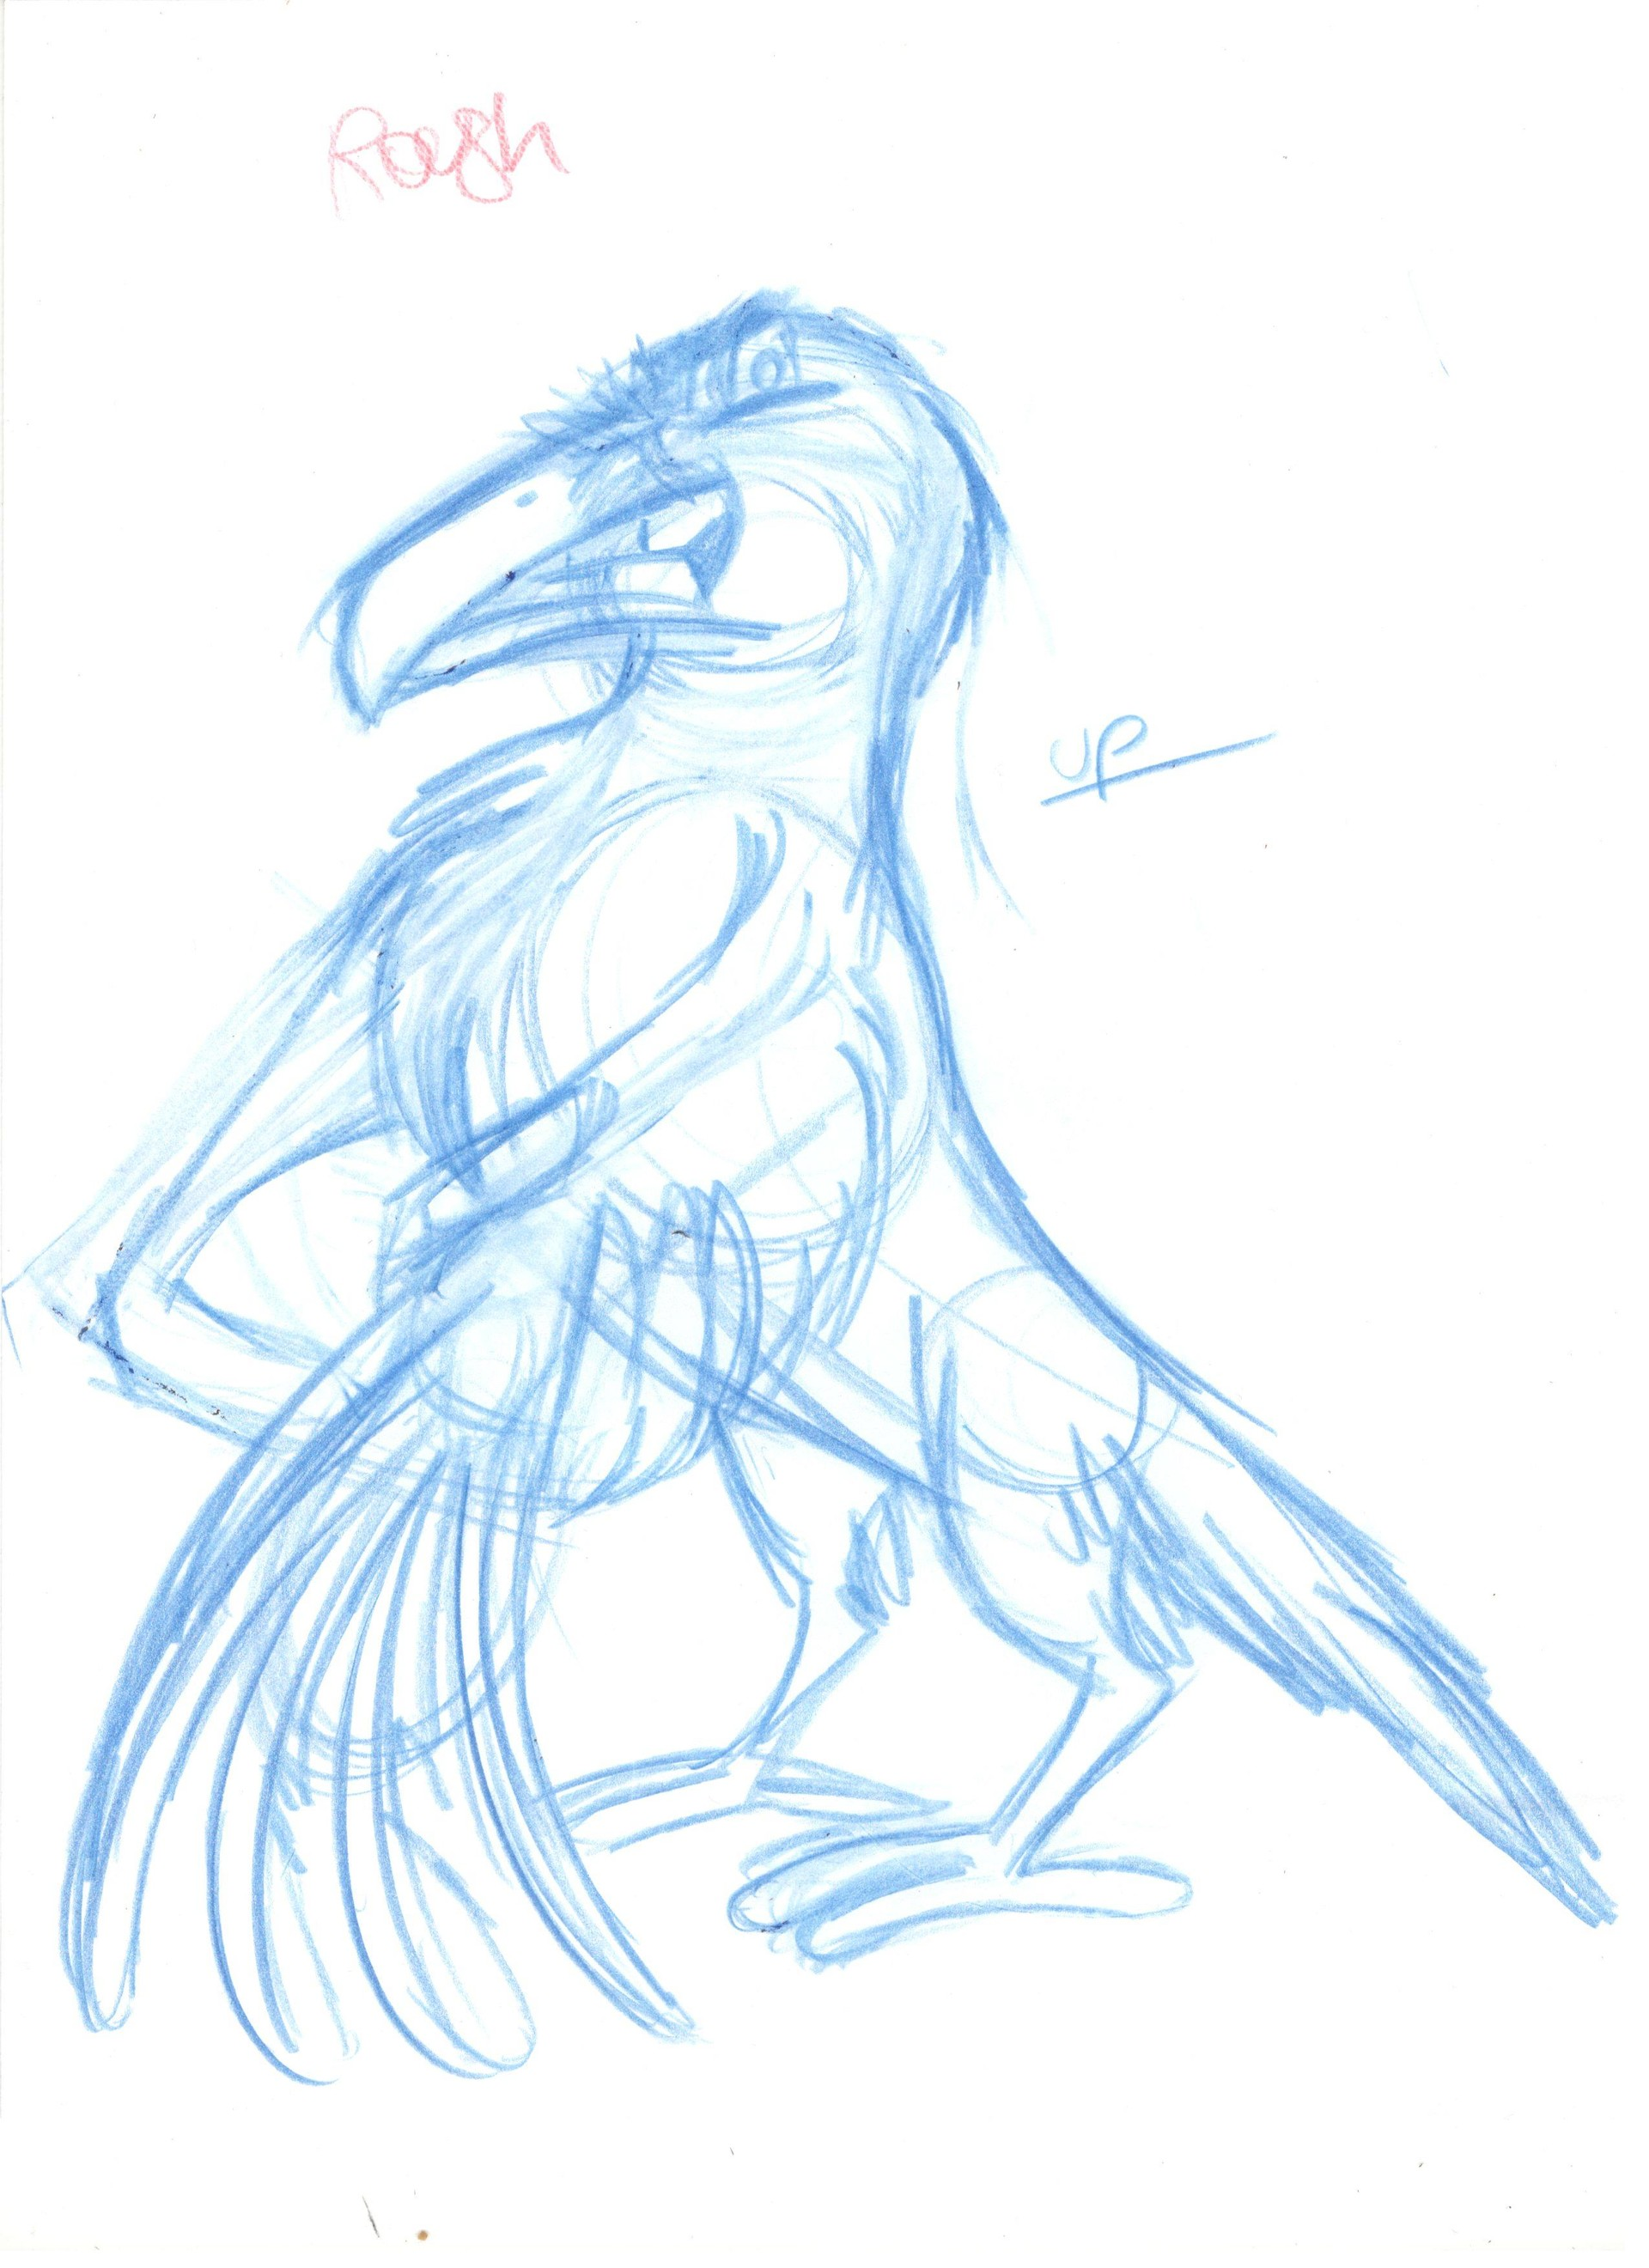 Rough drawing of a raven